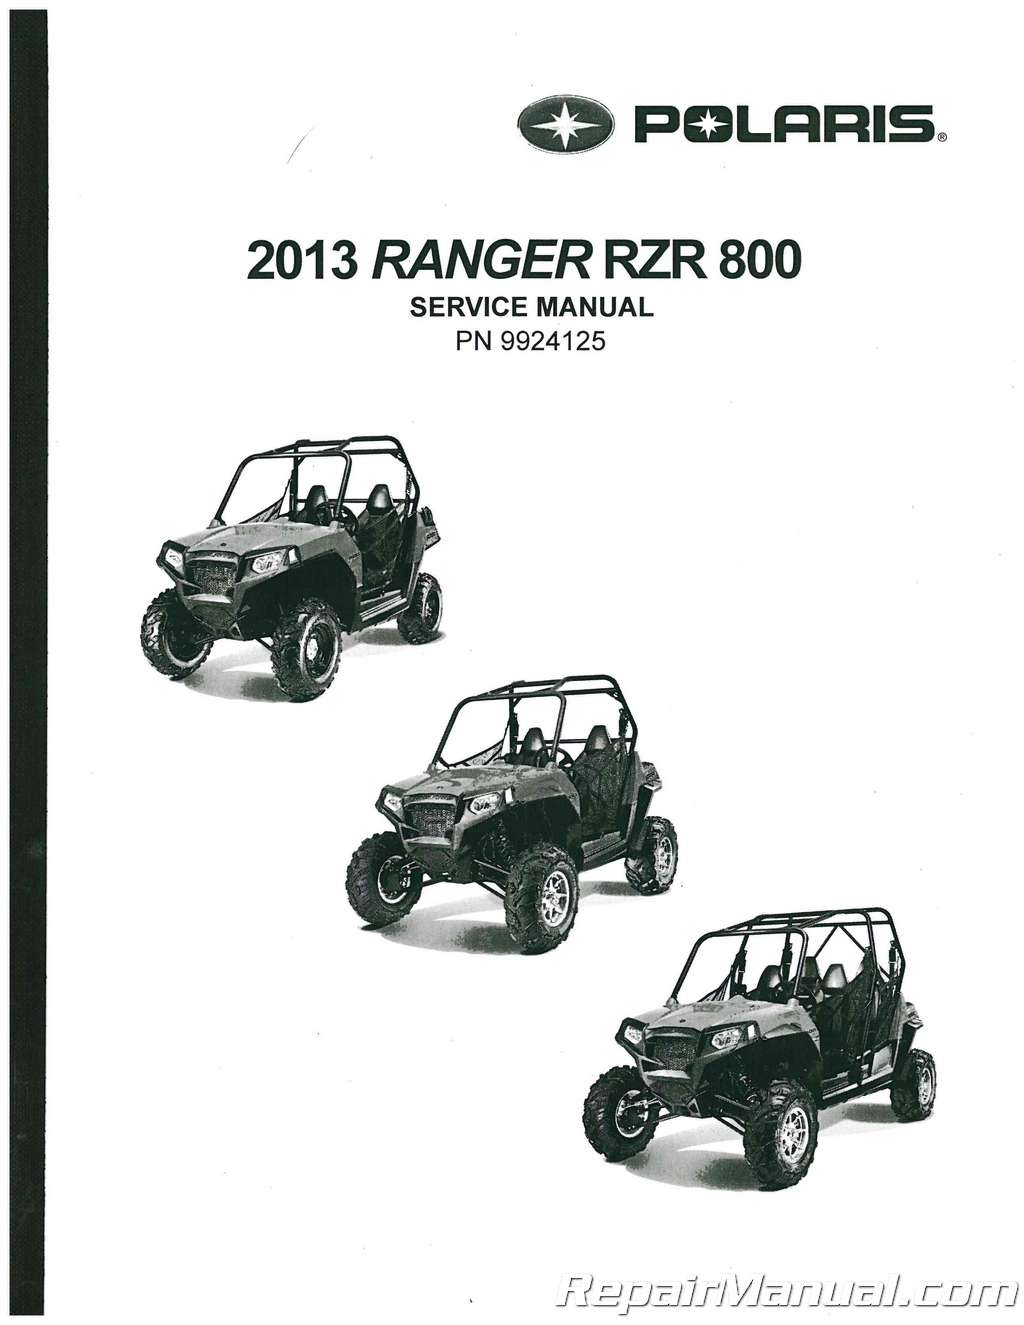 Polaris Ranger Rzr 800 Service Manual